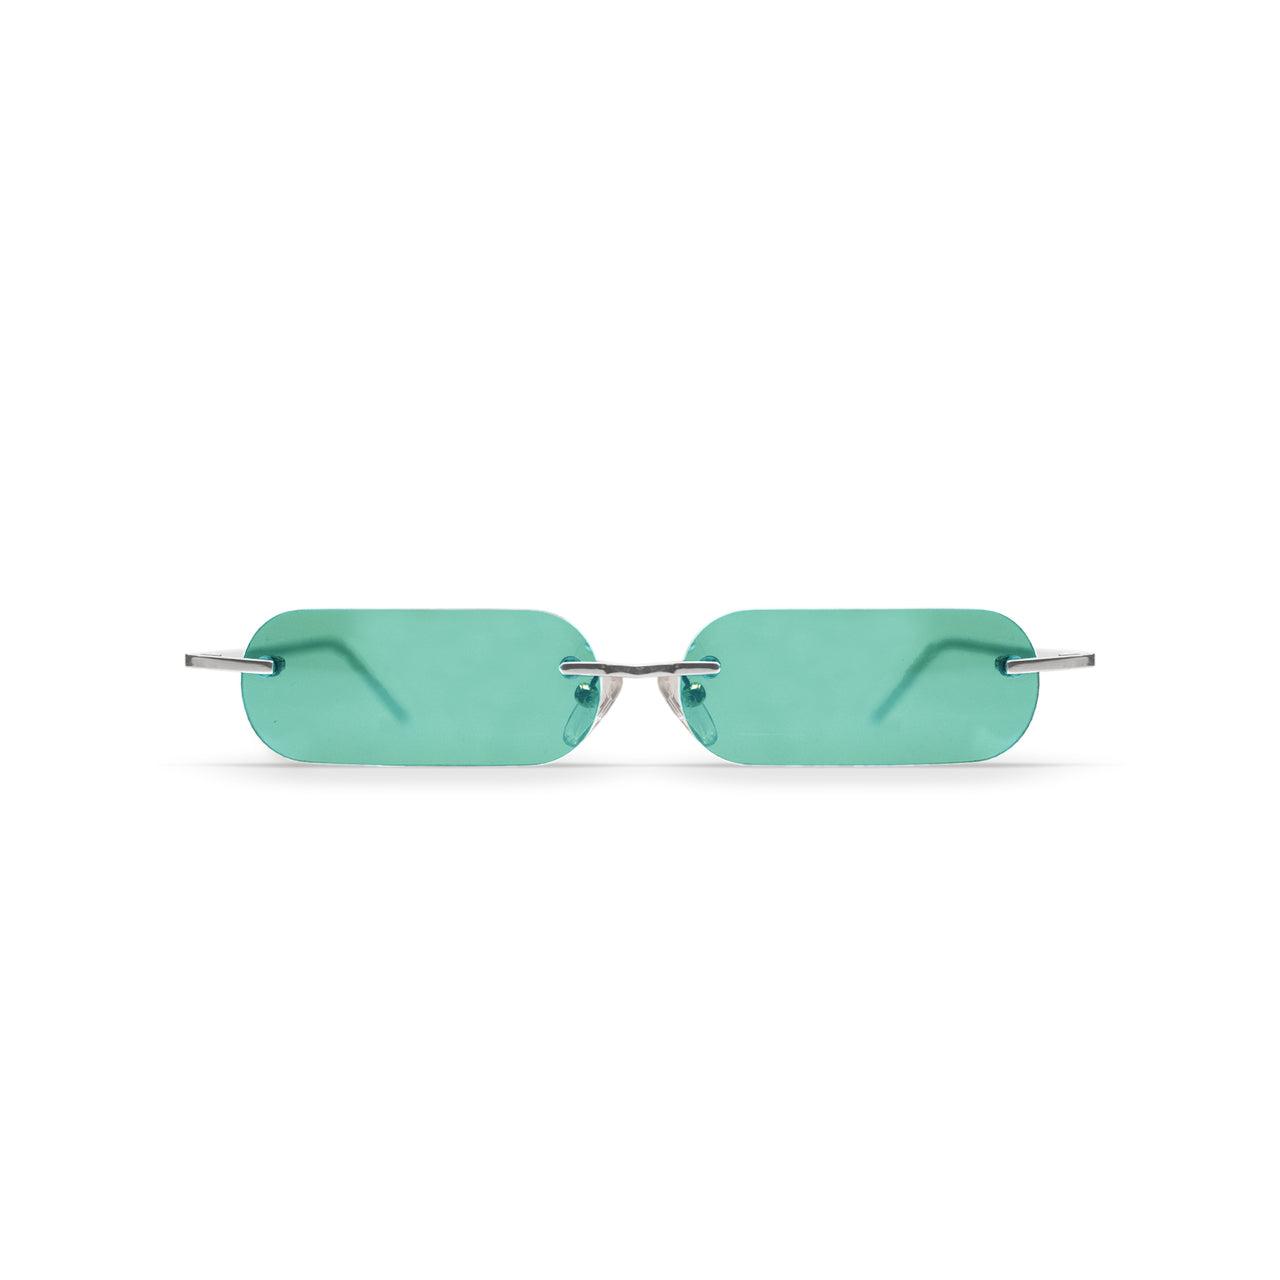 Metal. Polished Silver. Jade Lens. - BLYSZAK eyewear eyewear - eyewear, optical, sunglasses